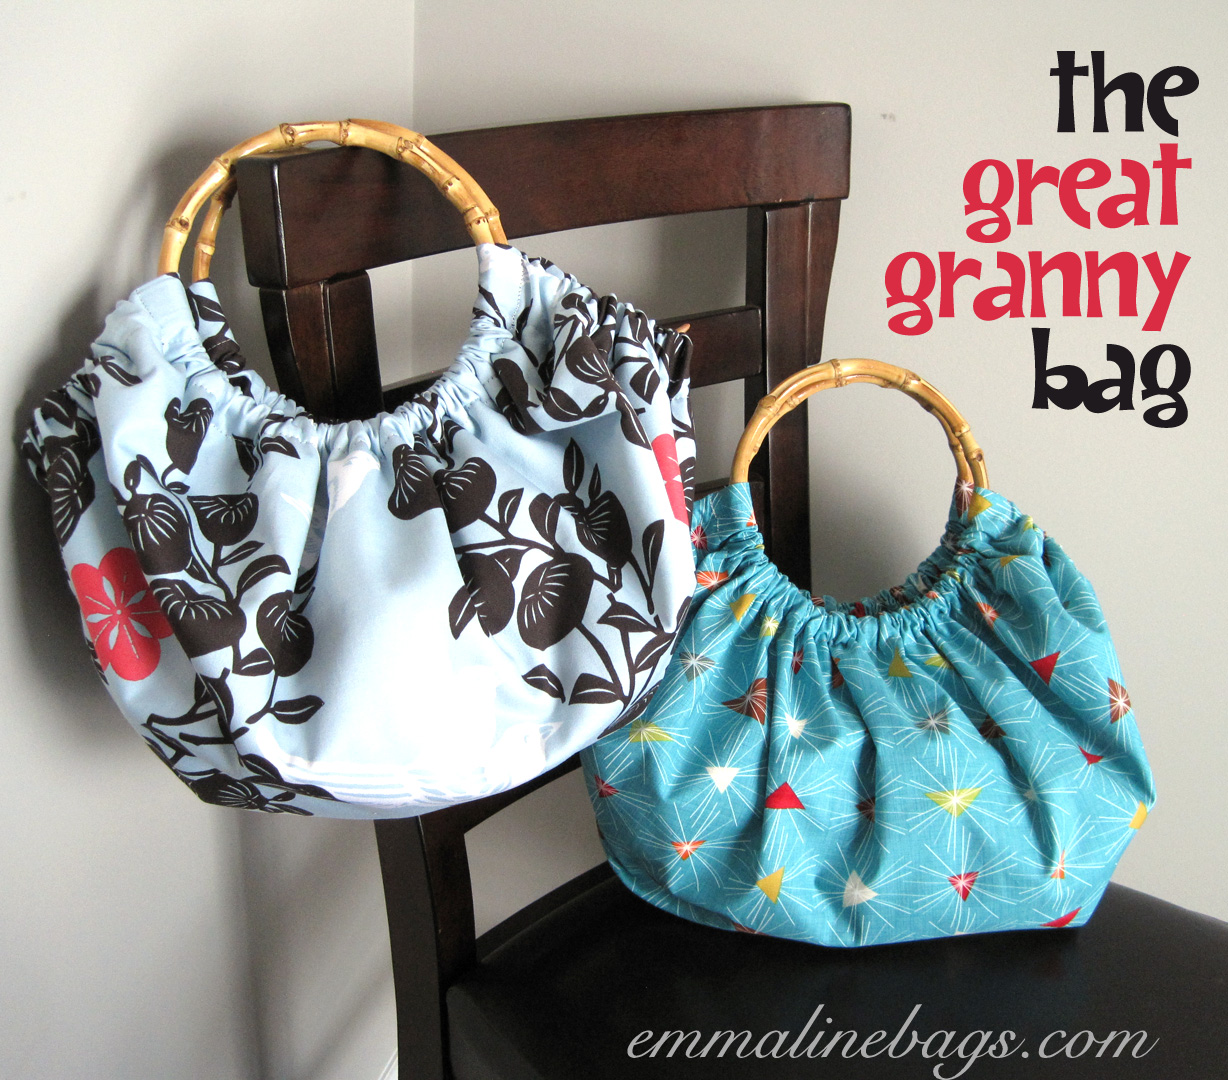 Bag 2 Is Made Of Quilting Cotton And A Bit Easier To Work With